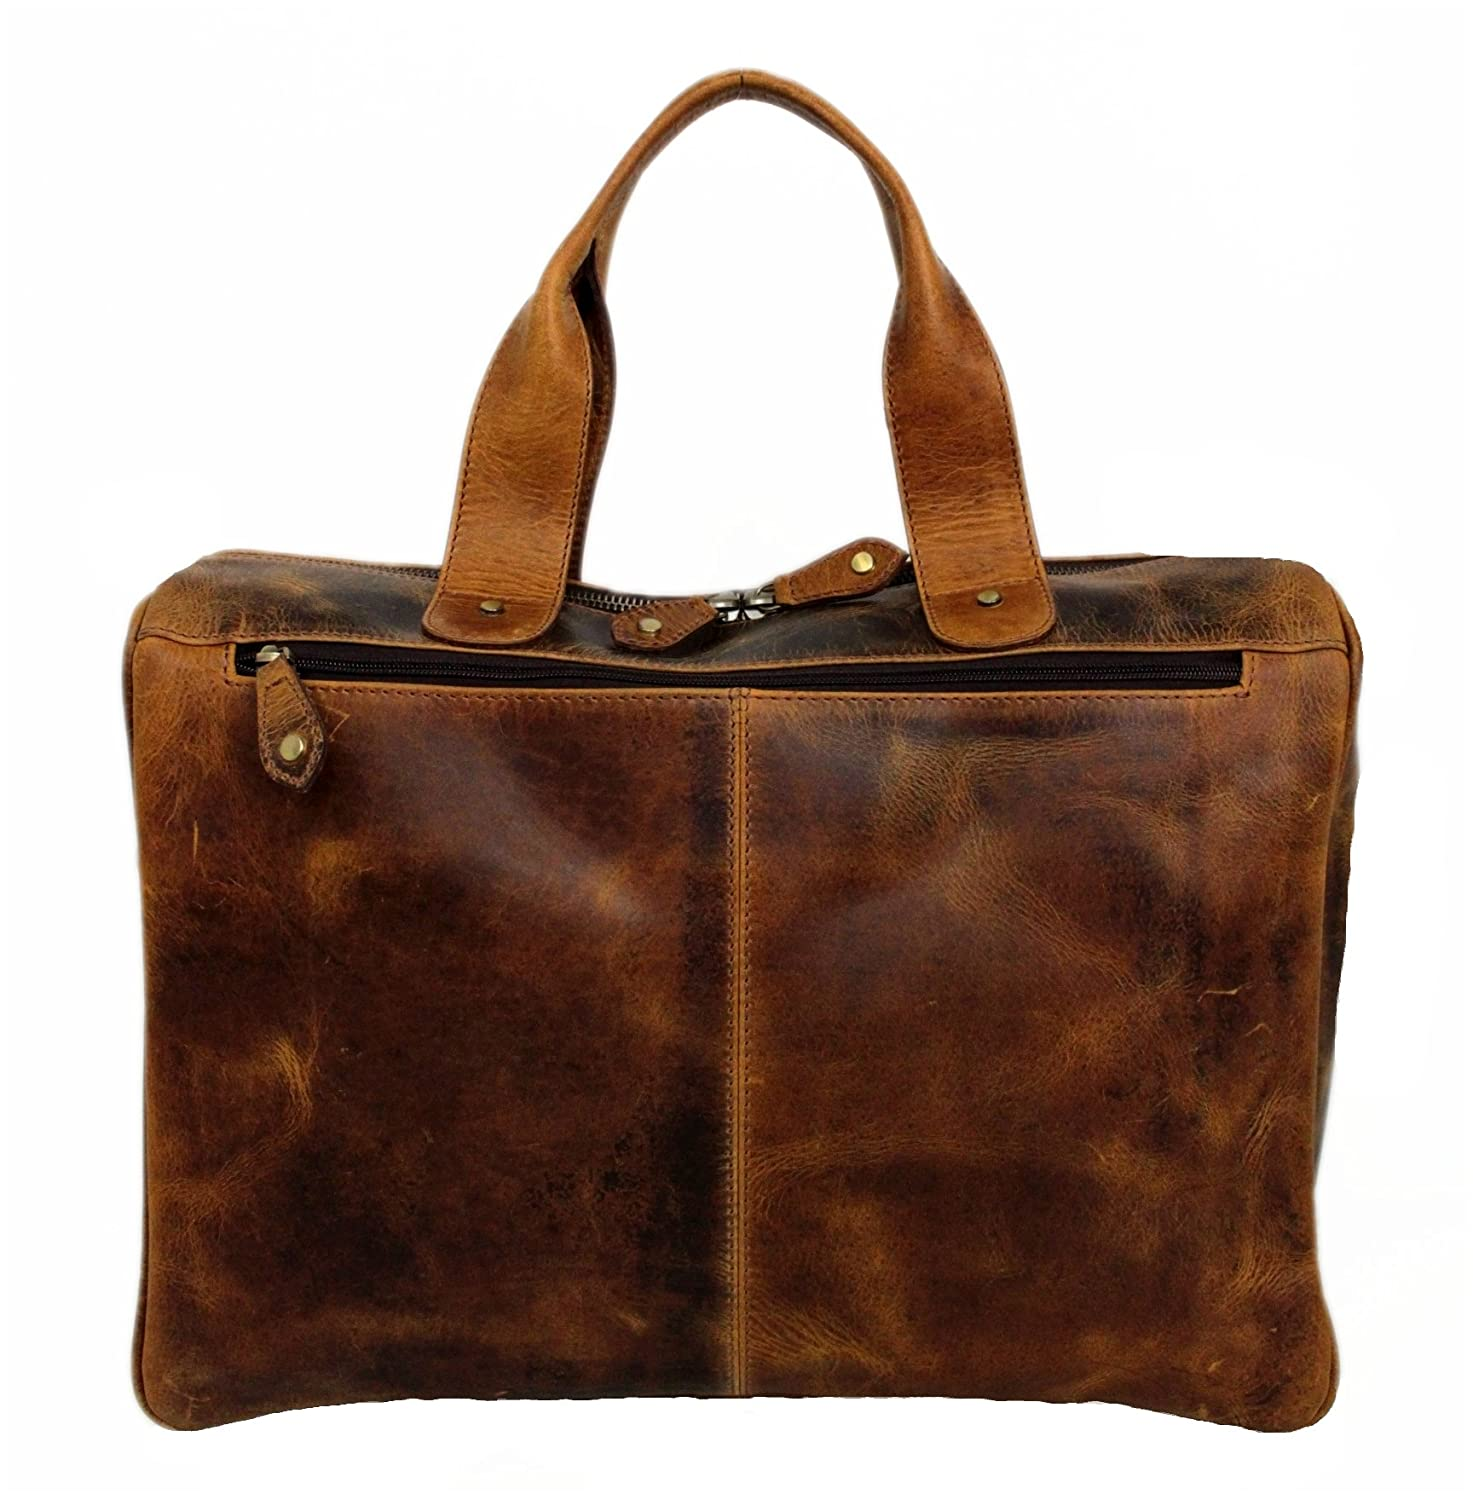 Leather Shoulder Bag for Women Business Bag with Strap Laptop 16-inch Derby PB34A